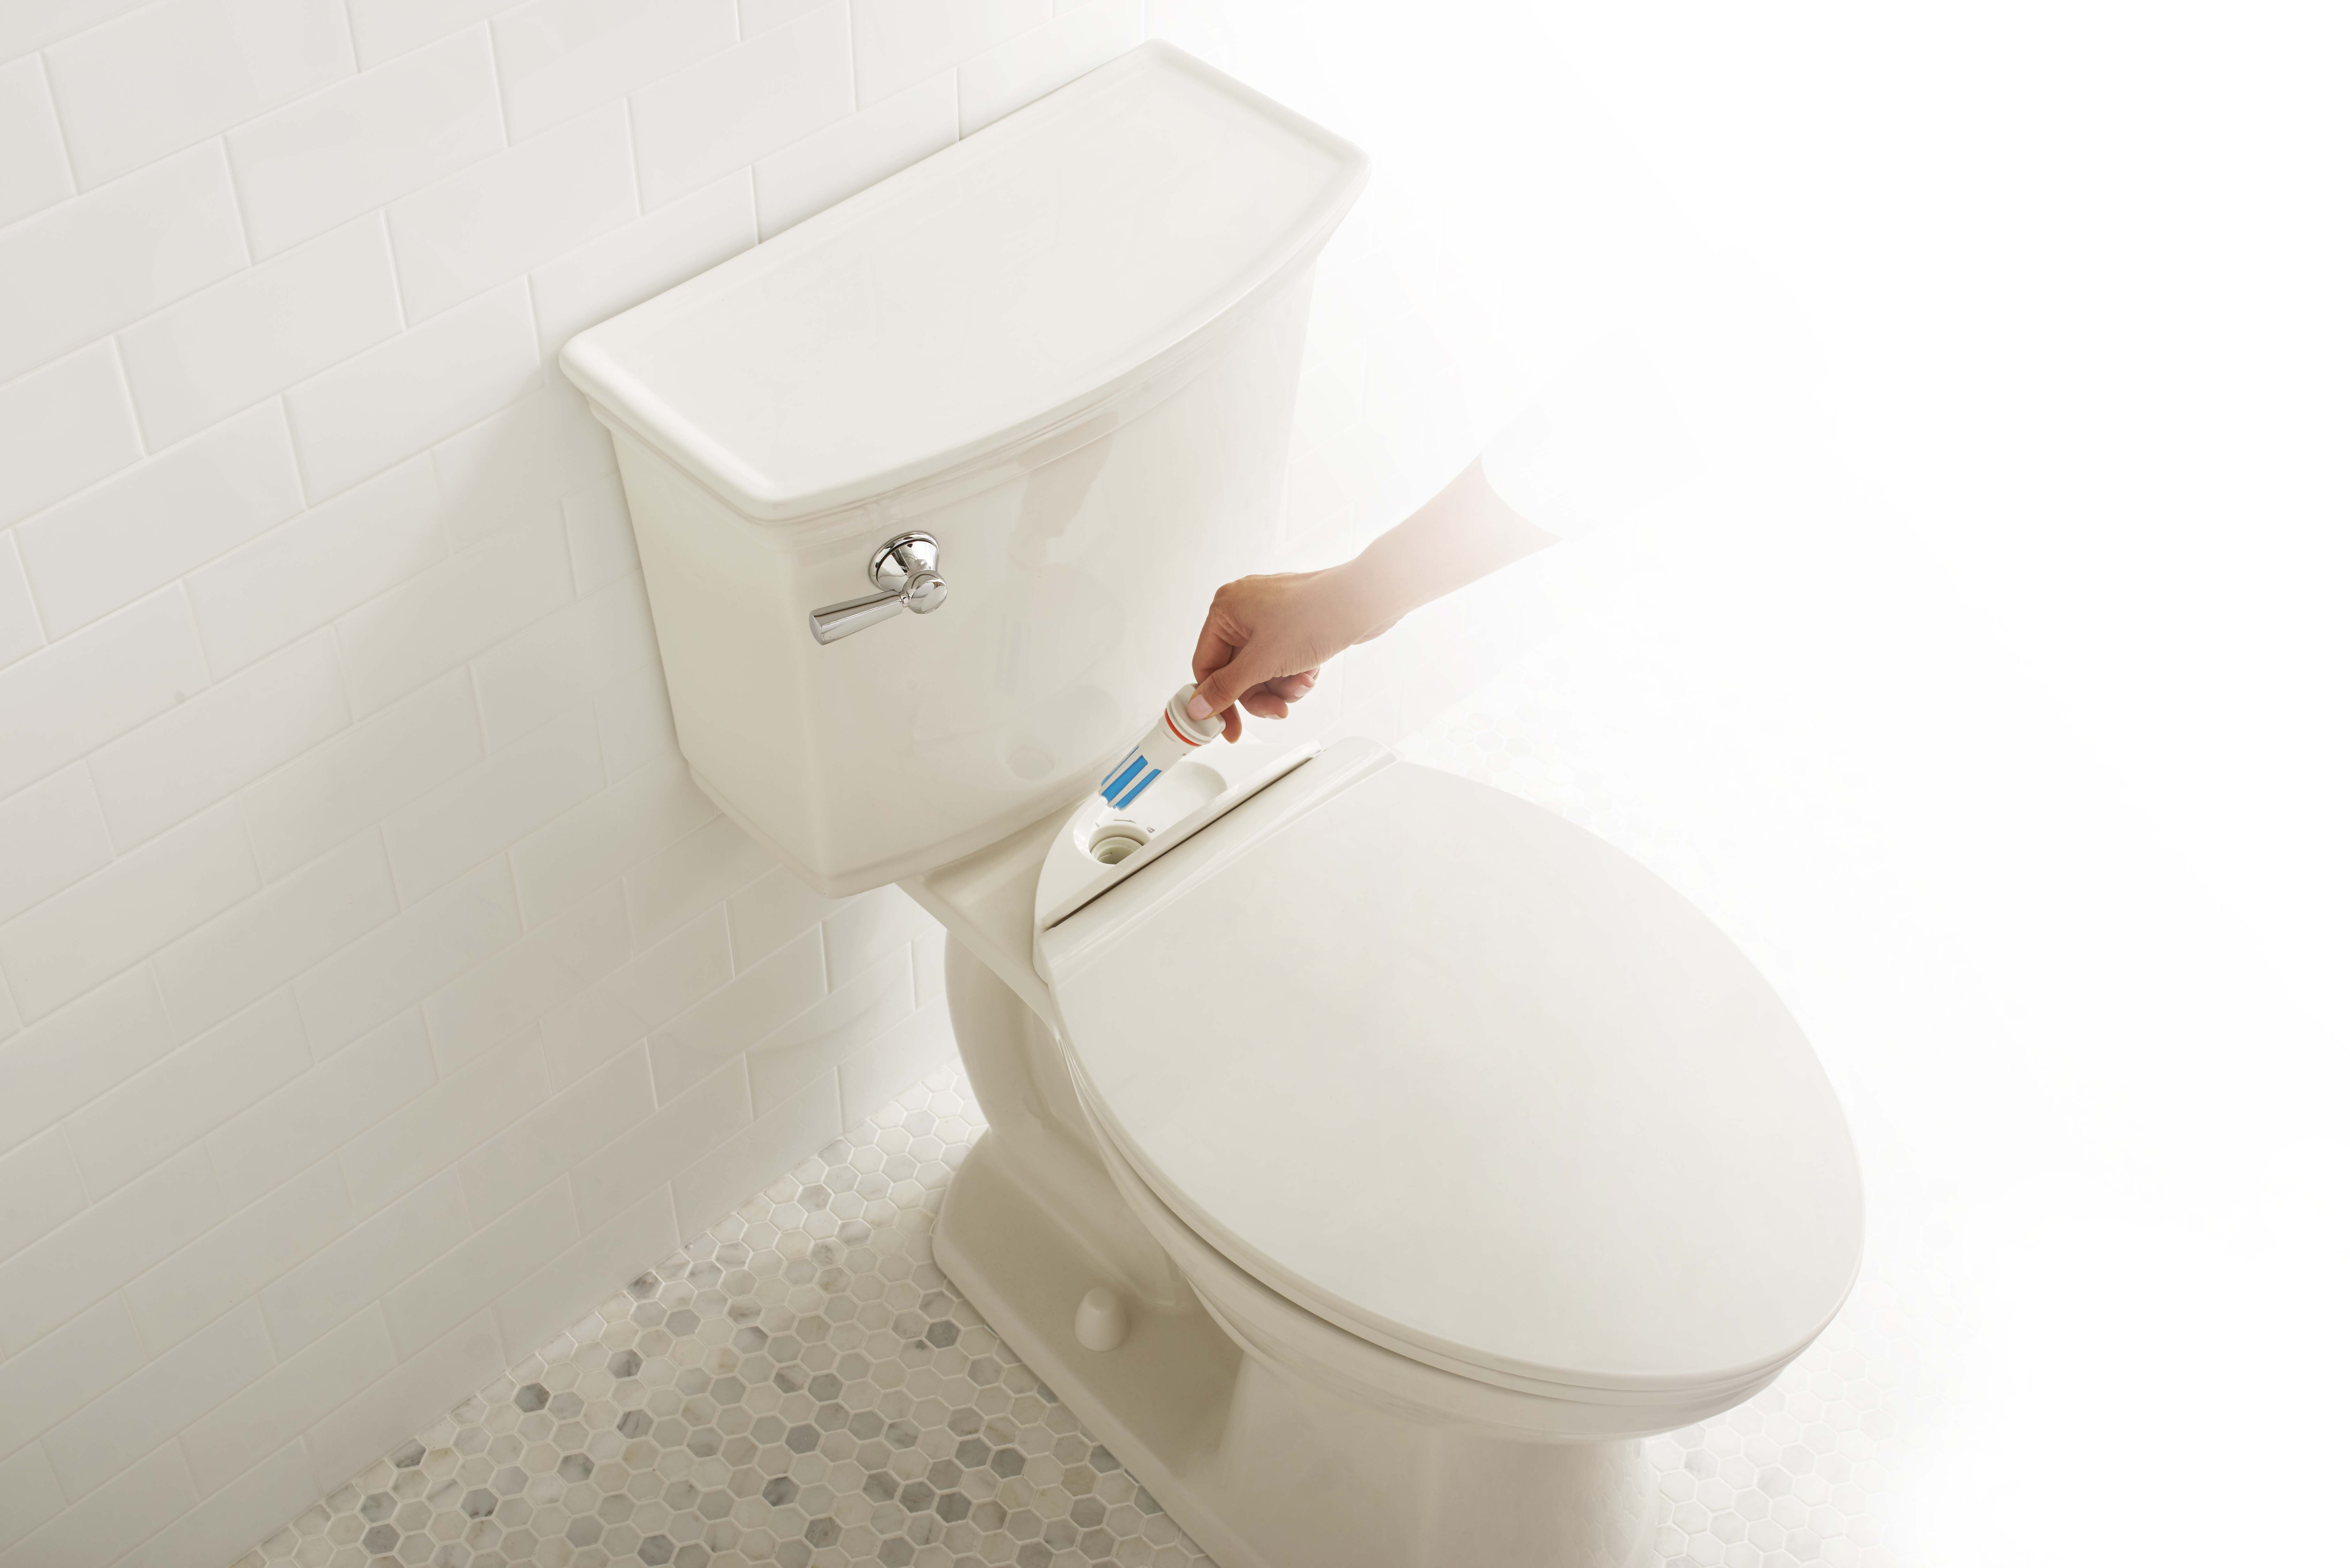 Self Cleaning Toilet Freshens With Every Flush Self Cleaning Toilet Toilet Cleaning Toilet